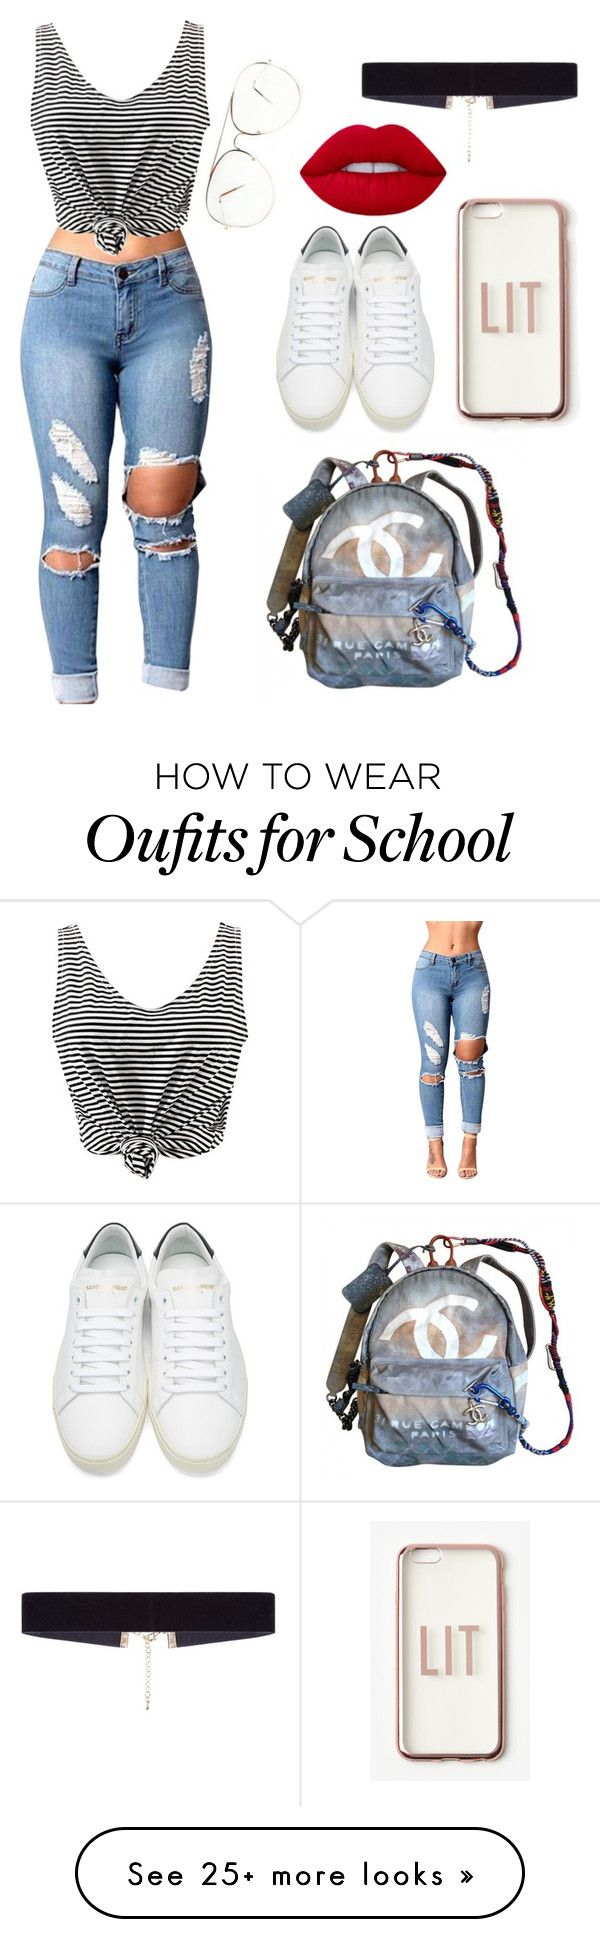 """""""School Outfit"""" by gustavia5347 on Polyvore featuring Chanel, Missguided, WithChic, Yves Saint Laurent and 8 Other Reasons"""